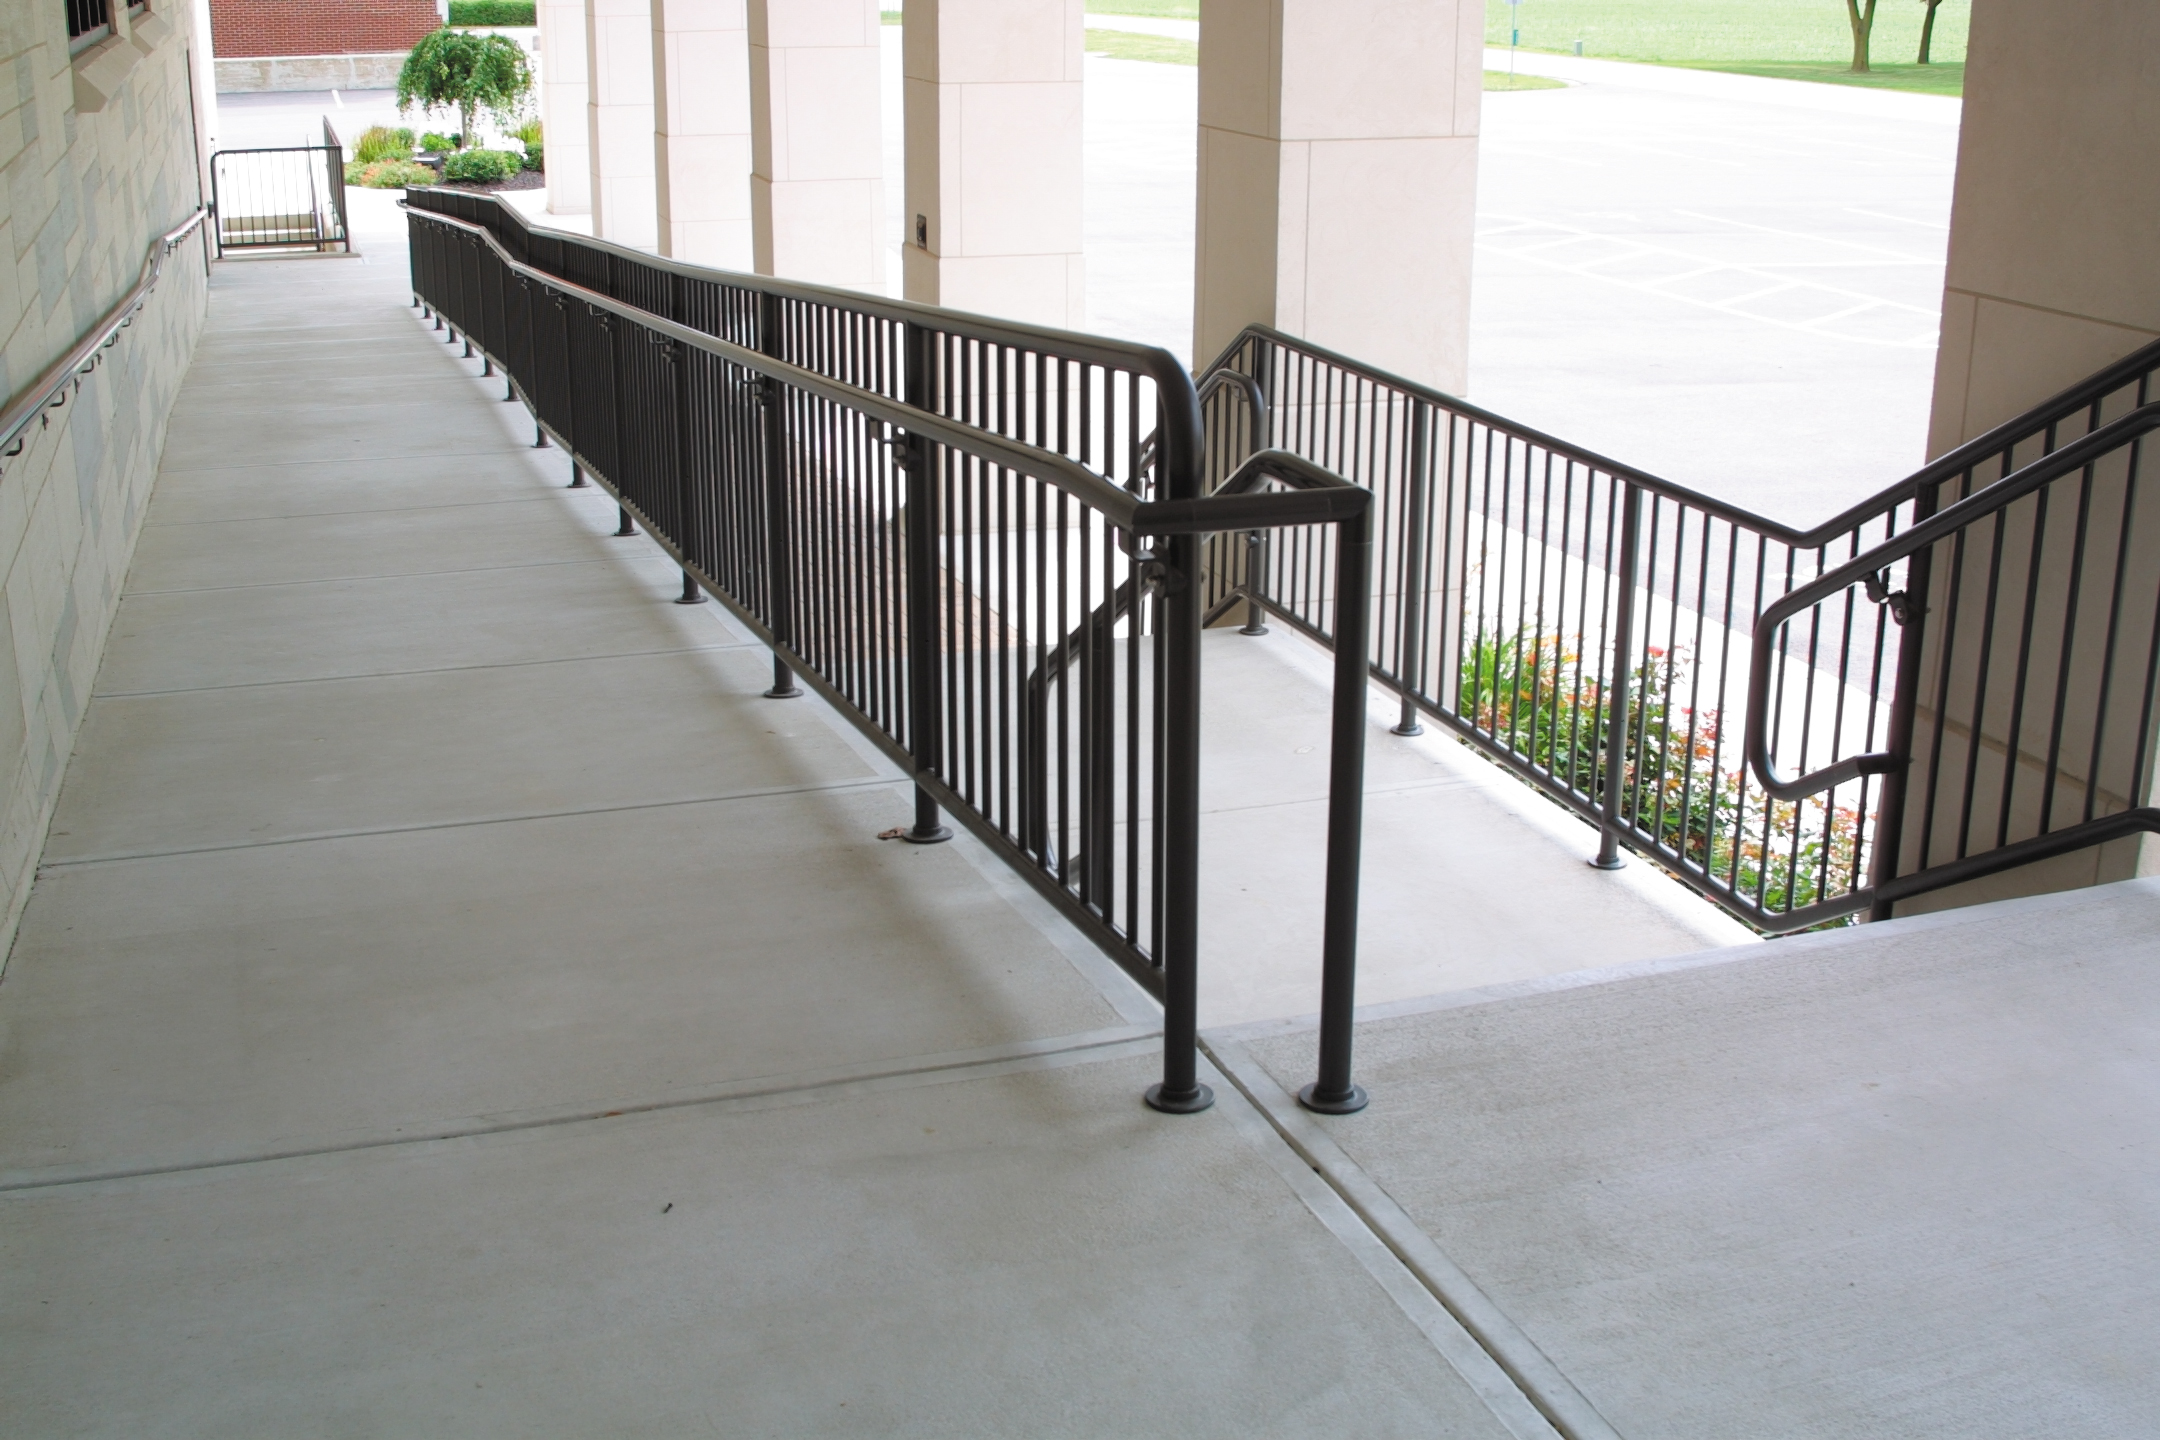 An Ohio church with pipe picket railing and pipe handrail to assist in travel up a ramp